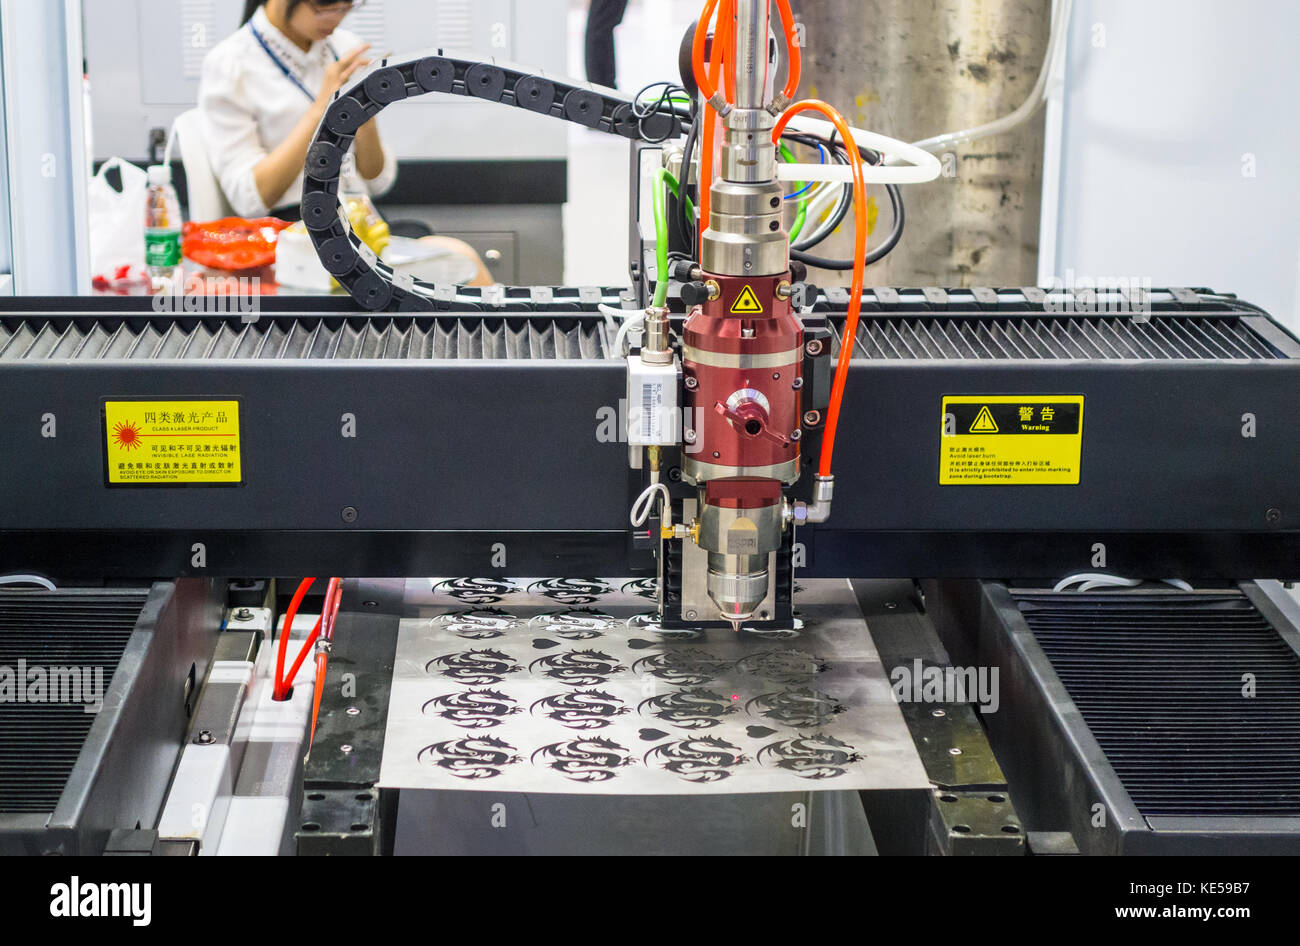 Laser engraving machine demo in Shenzhen, China - Stock Image